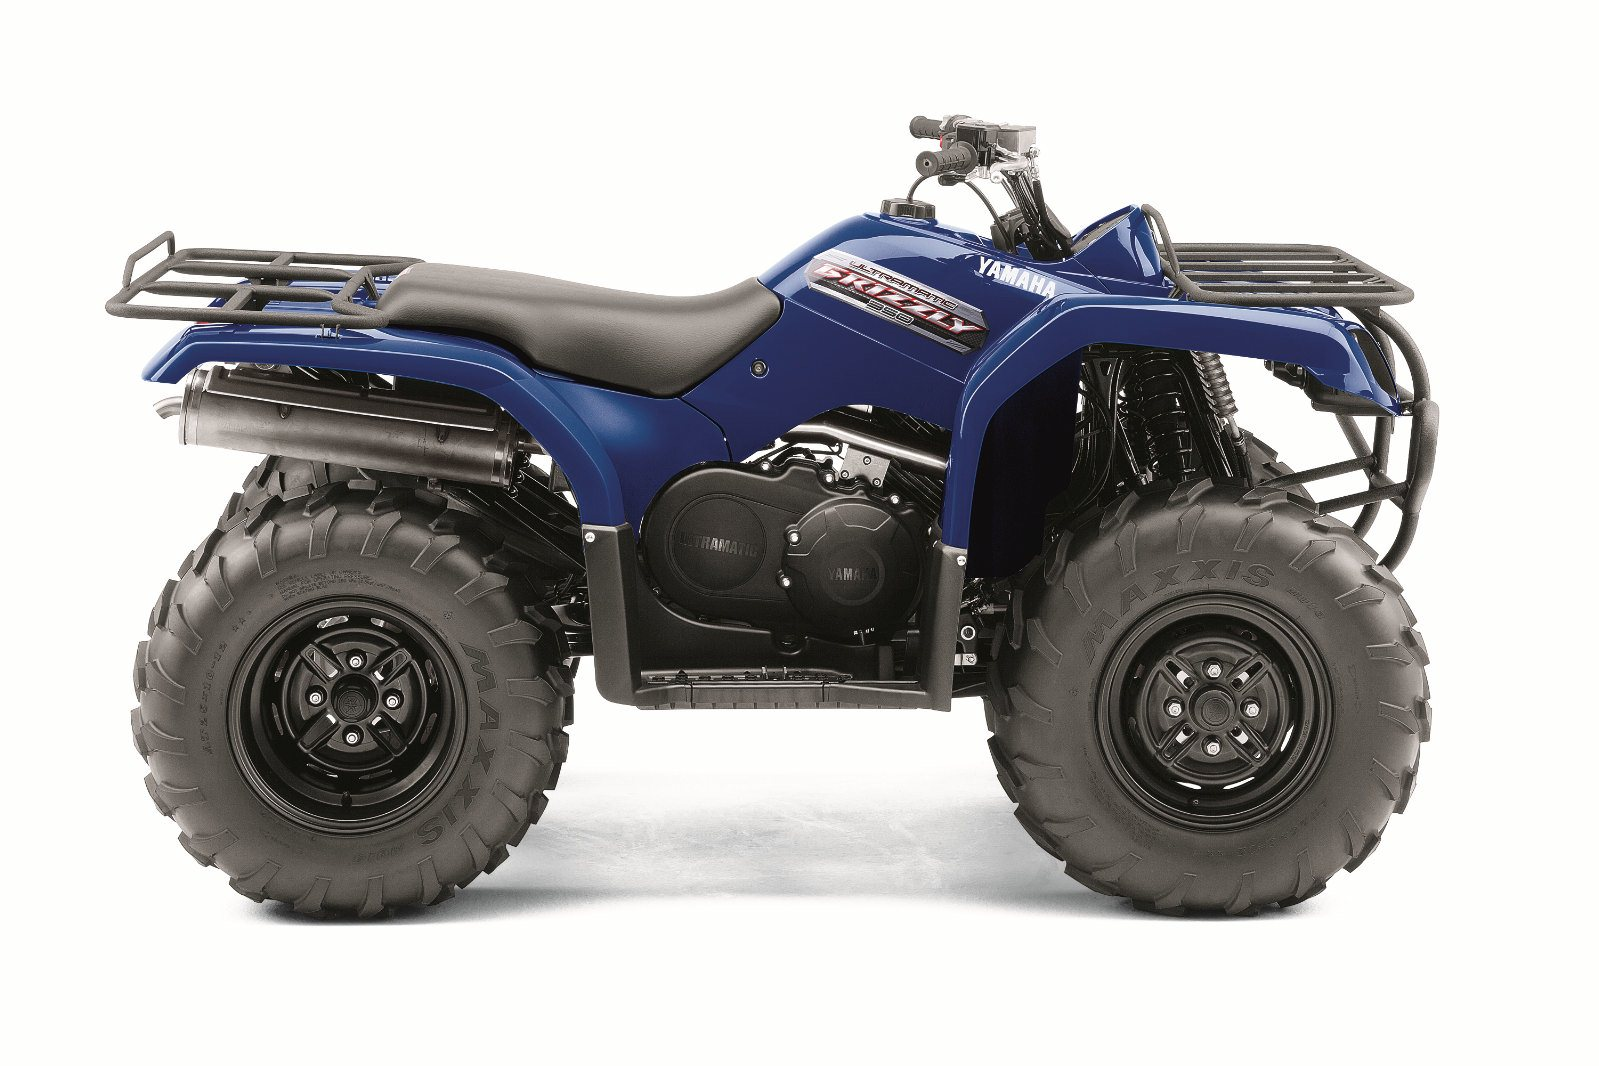 2012 yamaha grizzly 350 auto 4x4 review top speed for Yamaha 350 grizzly